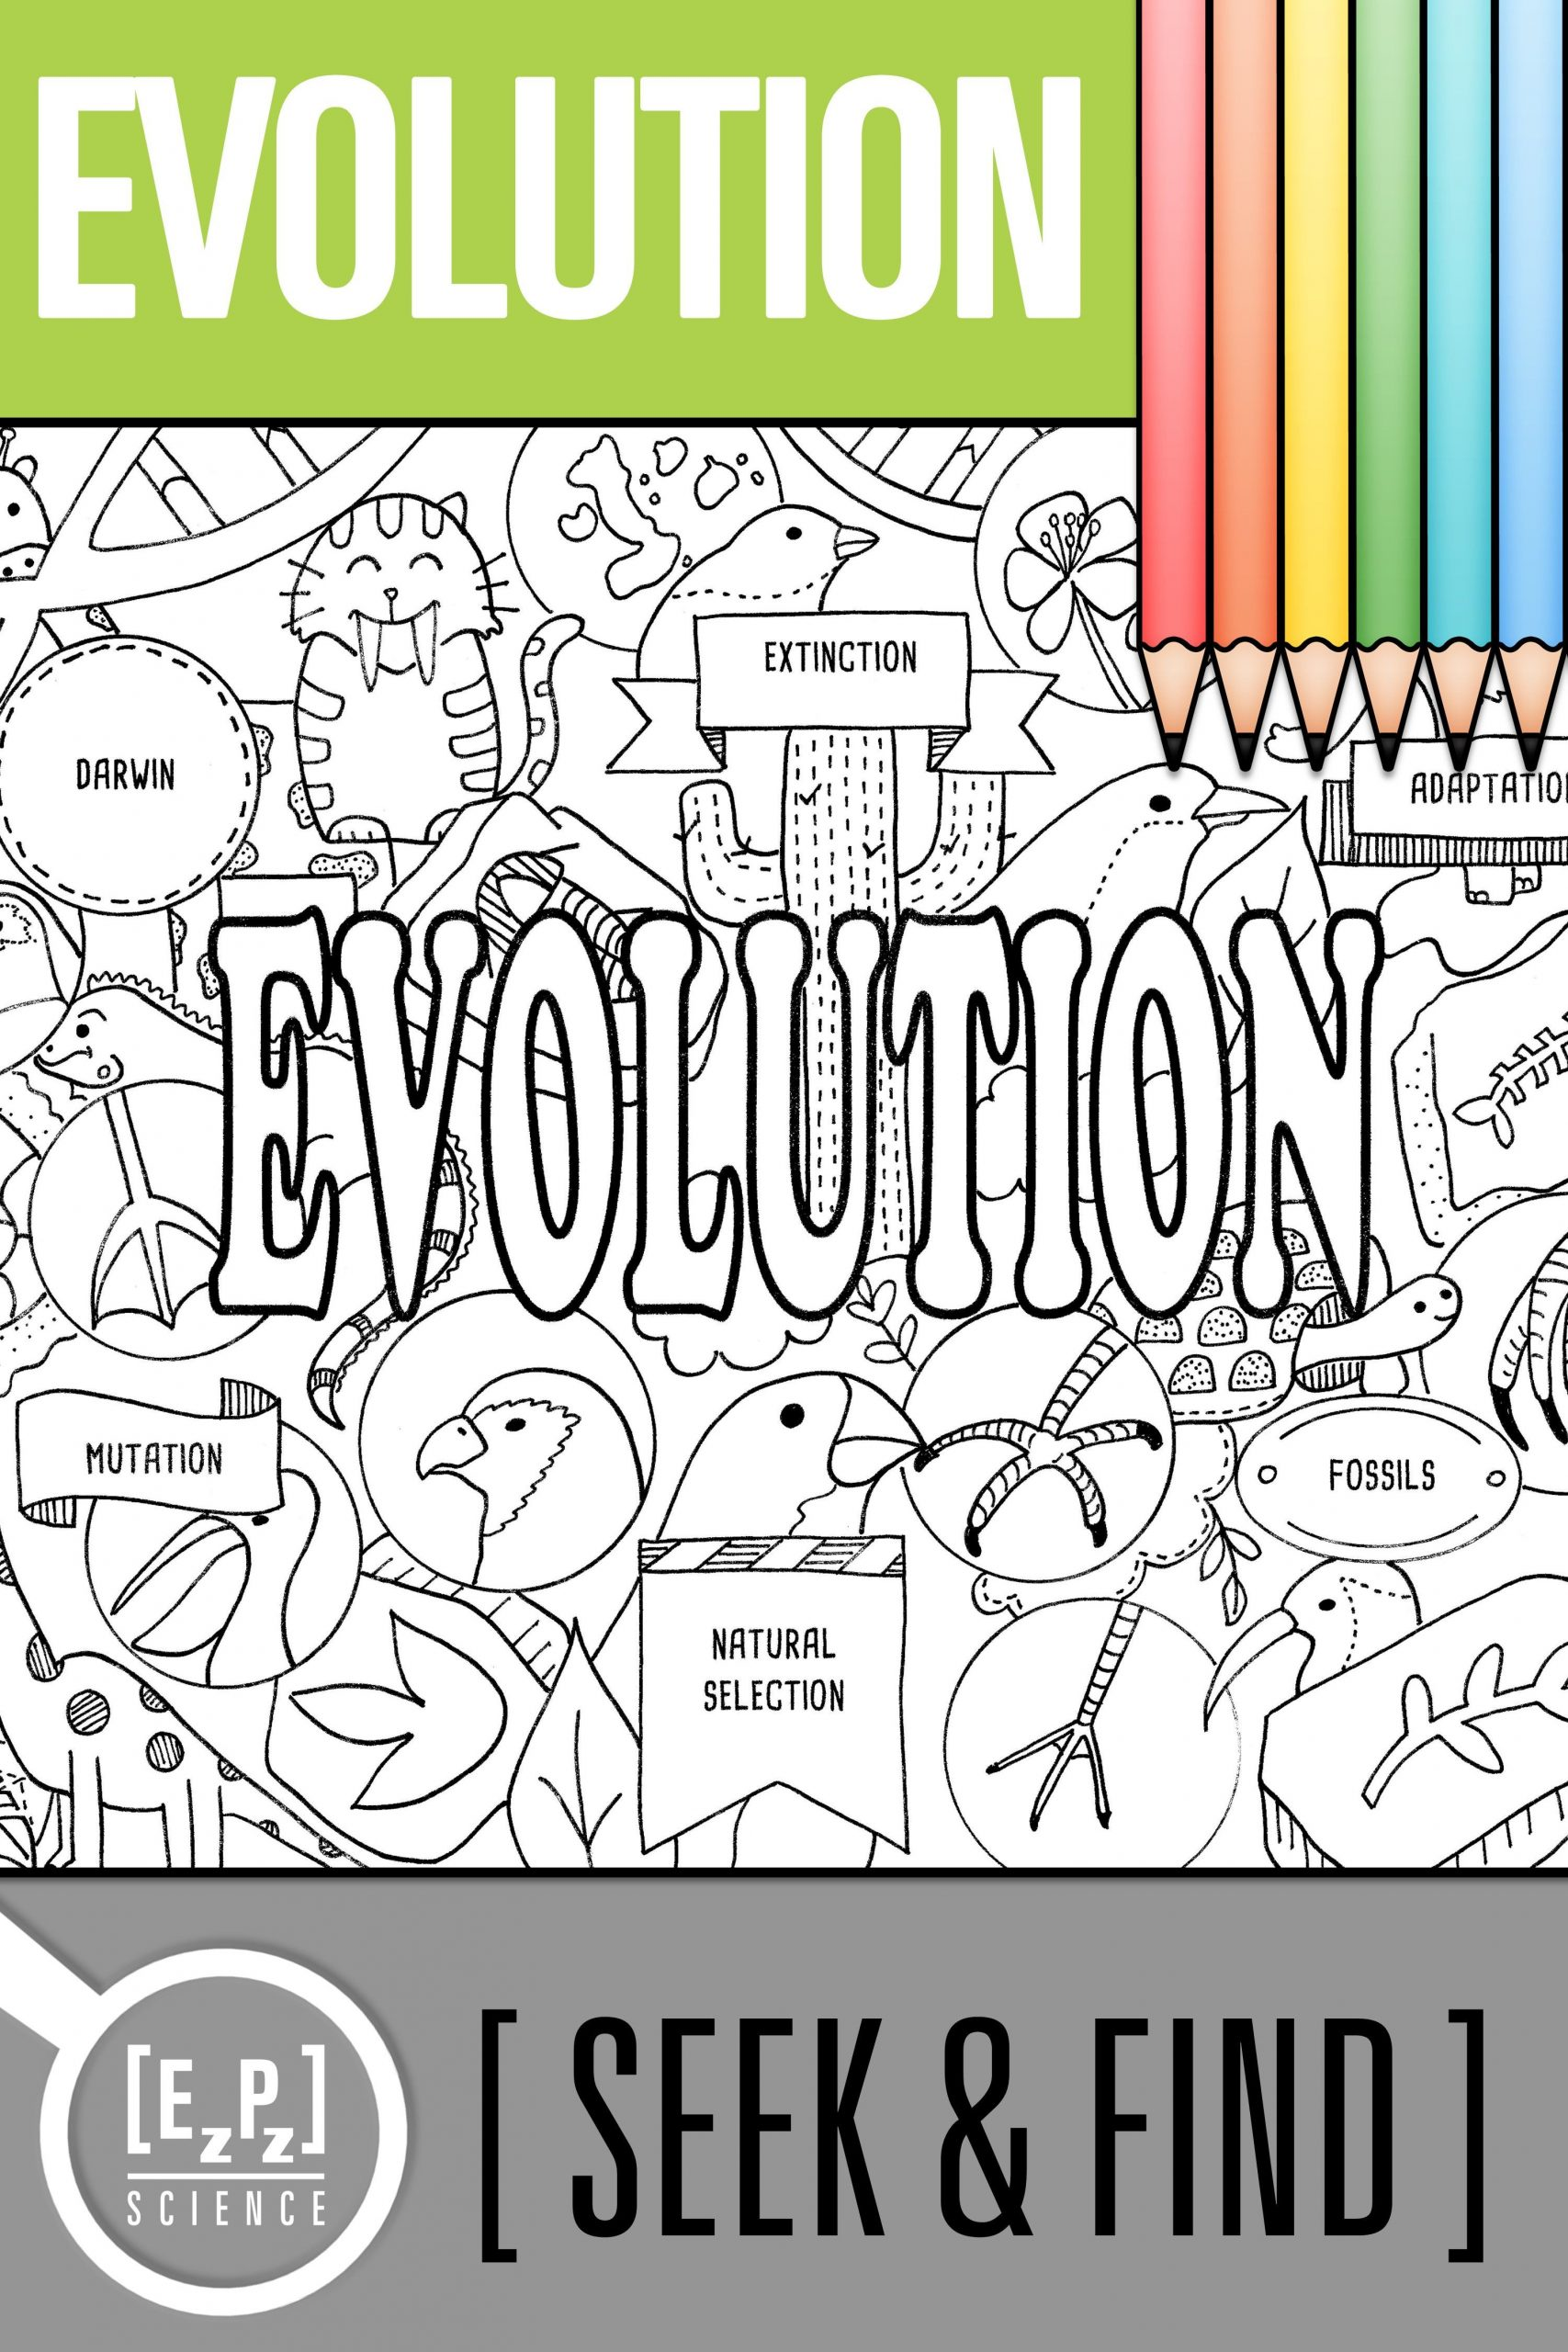 Darwin039s Natural Selection Worksheet Answers Evolution Seek and Find Science Doodle Page